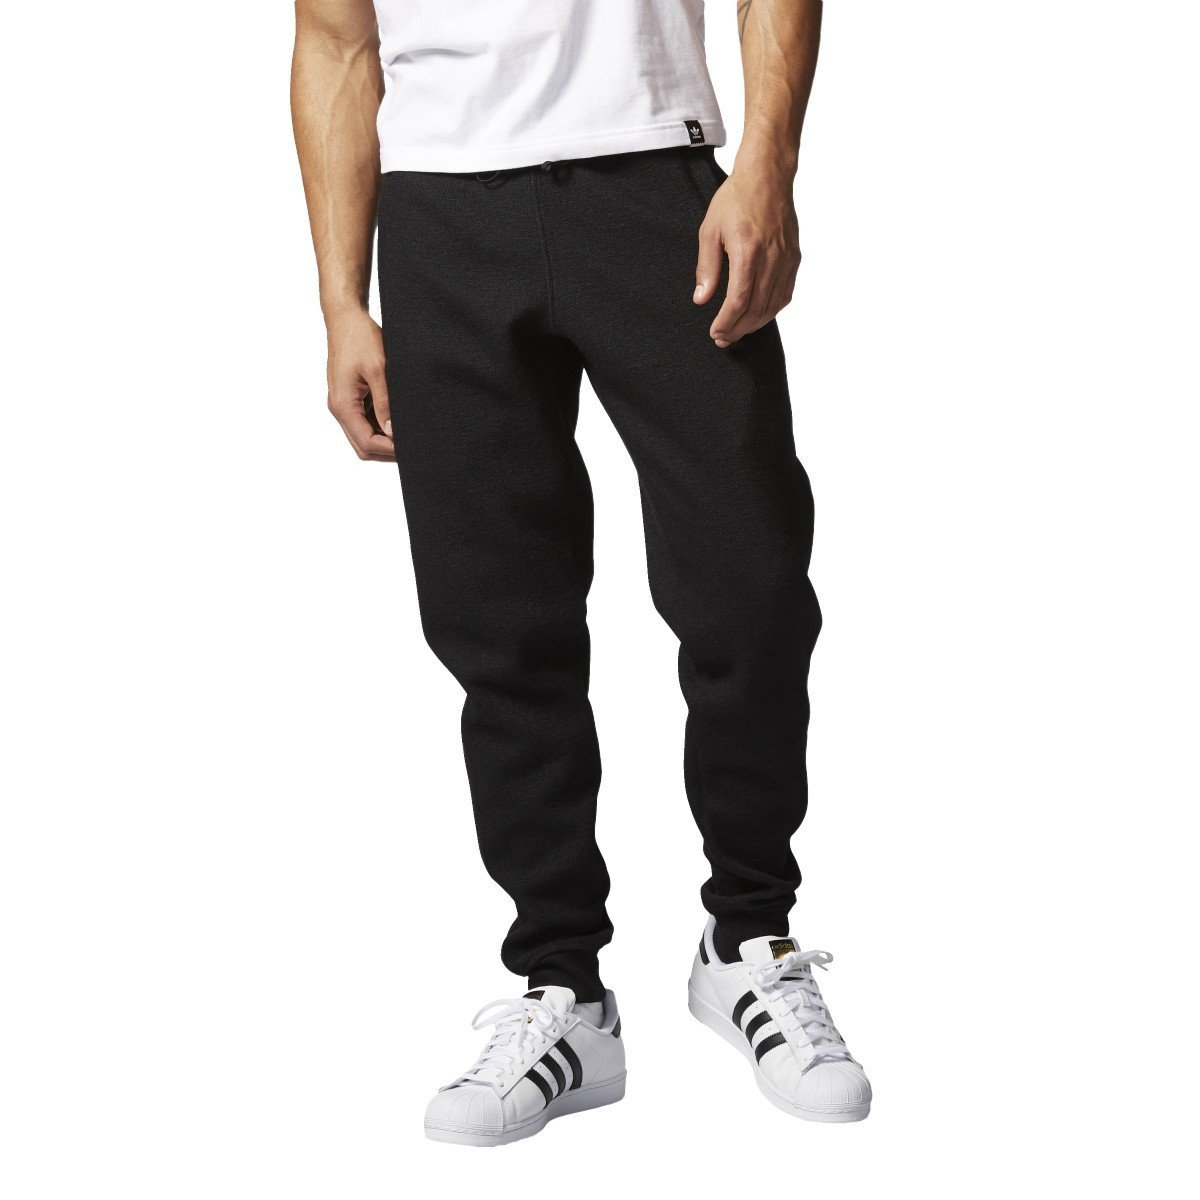 919917fbf7961 adidas Originals   Pharrell Williams Mens Luxury Track Pants Joggers  rrp£155  Amazon.co.uk  Sports   Outdoors